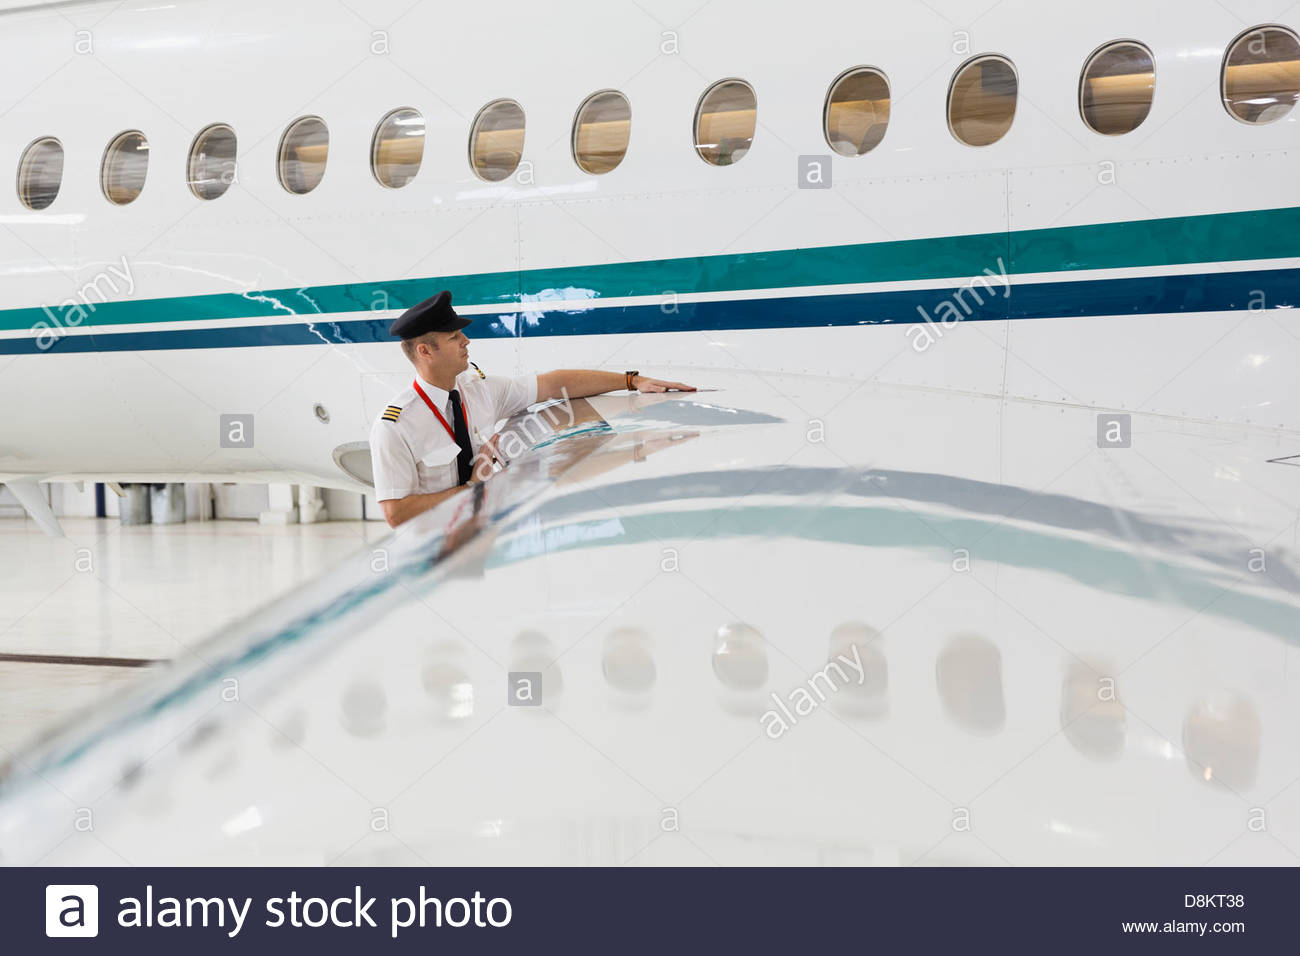 Male pilot checking airplane wing in hangar - Stock Image